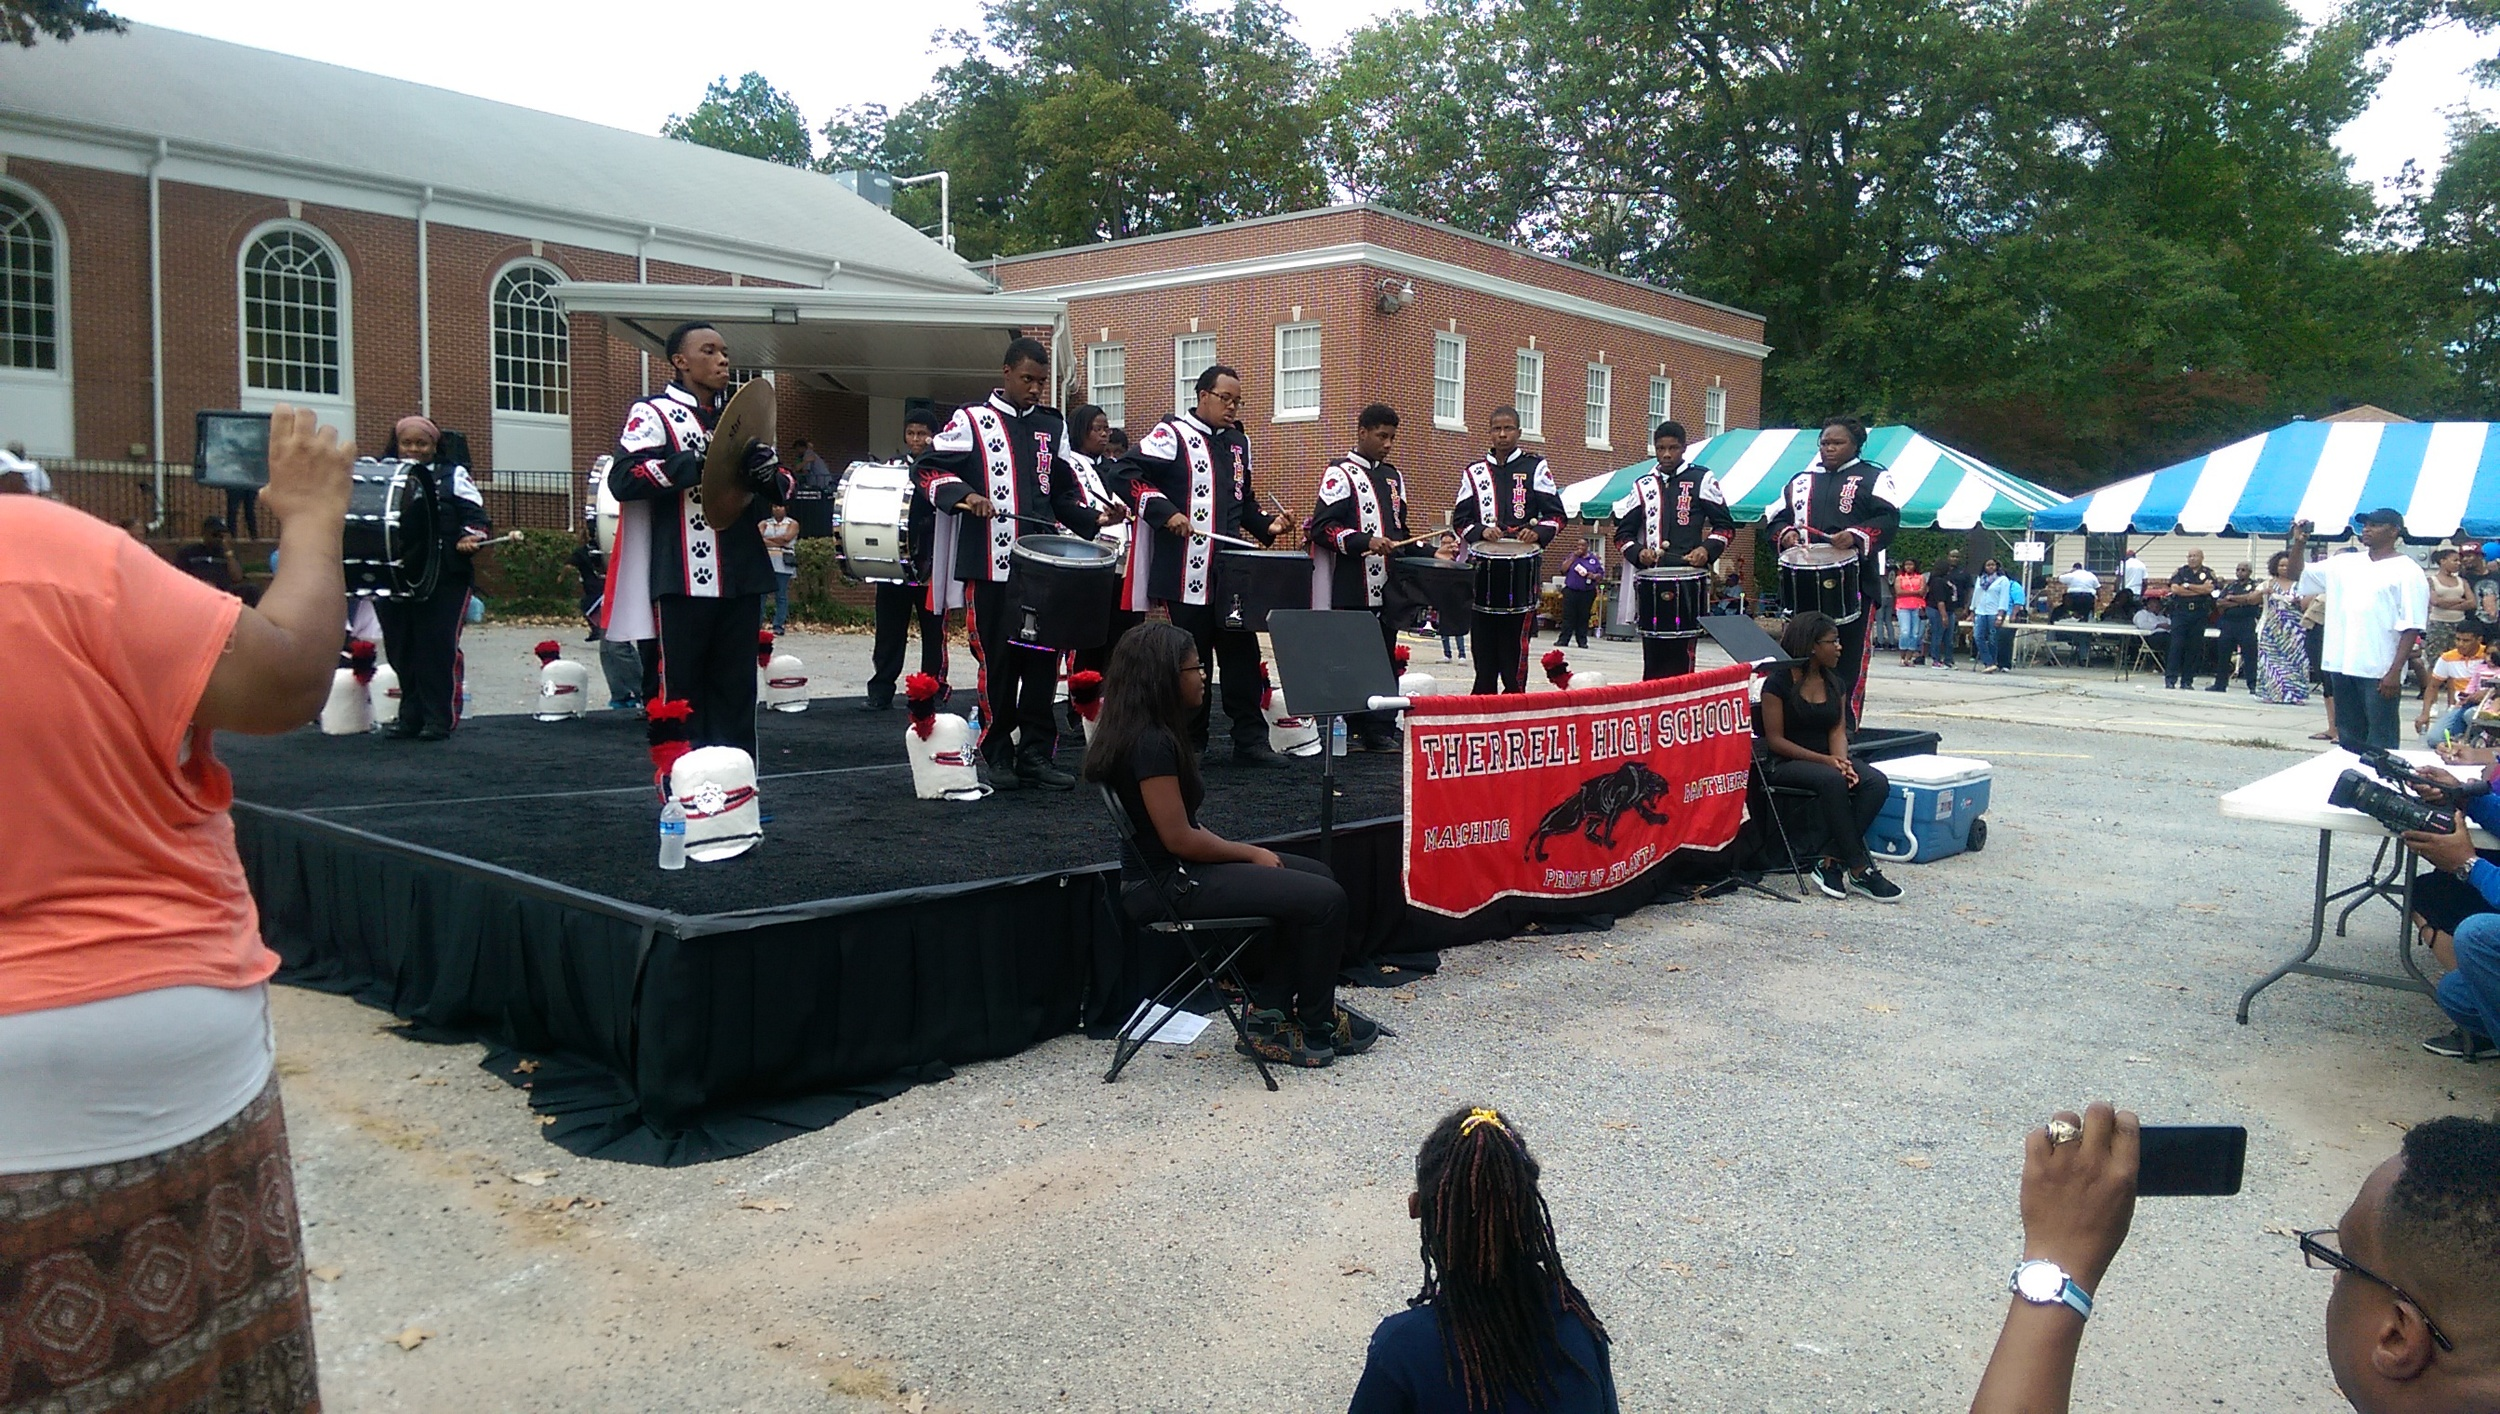 Drum line competitors. Classic in black, red and white.